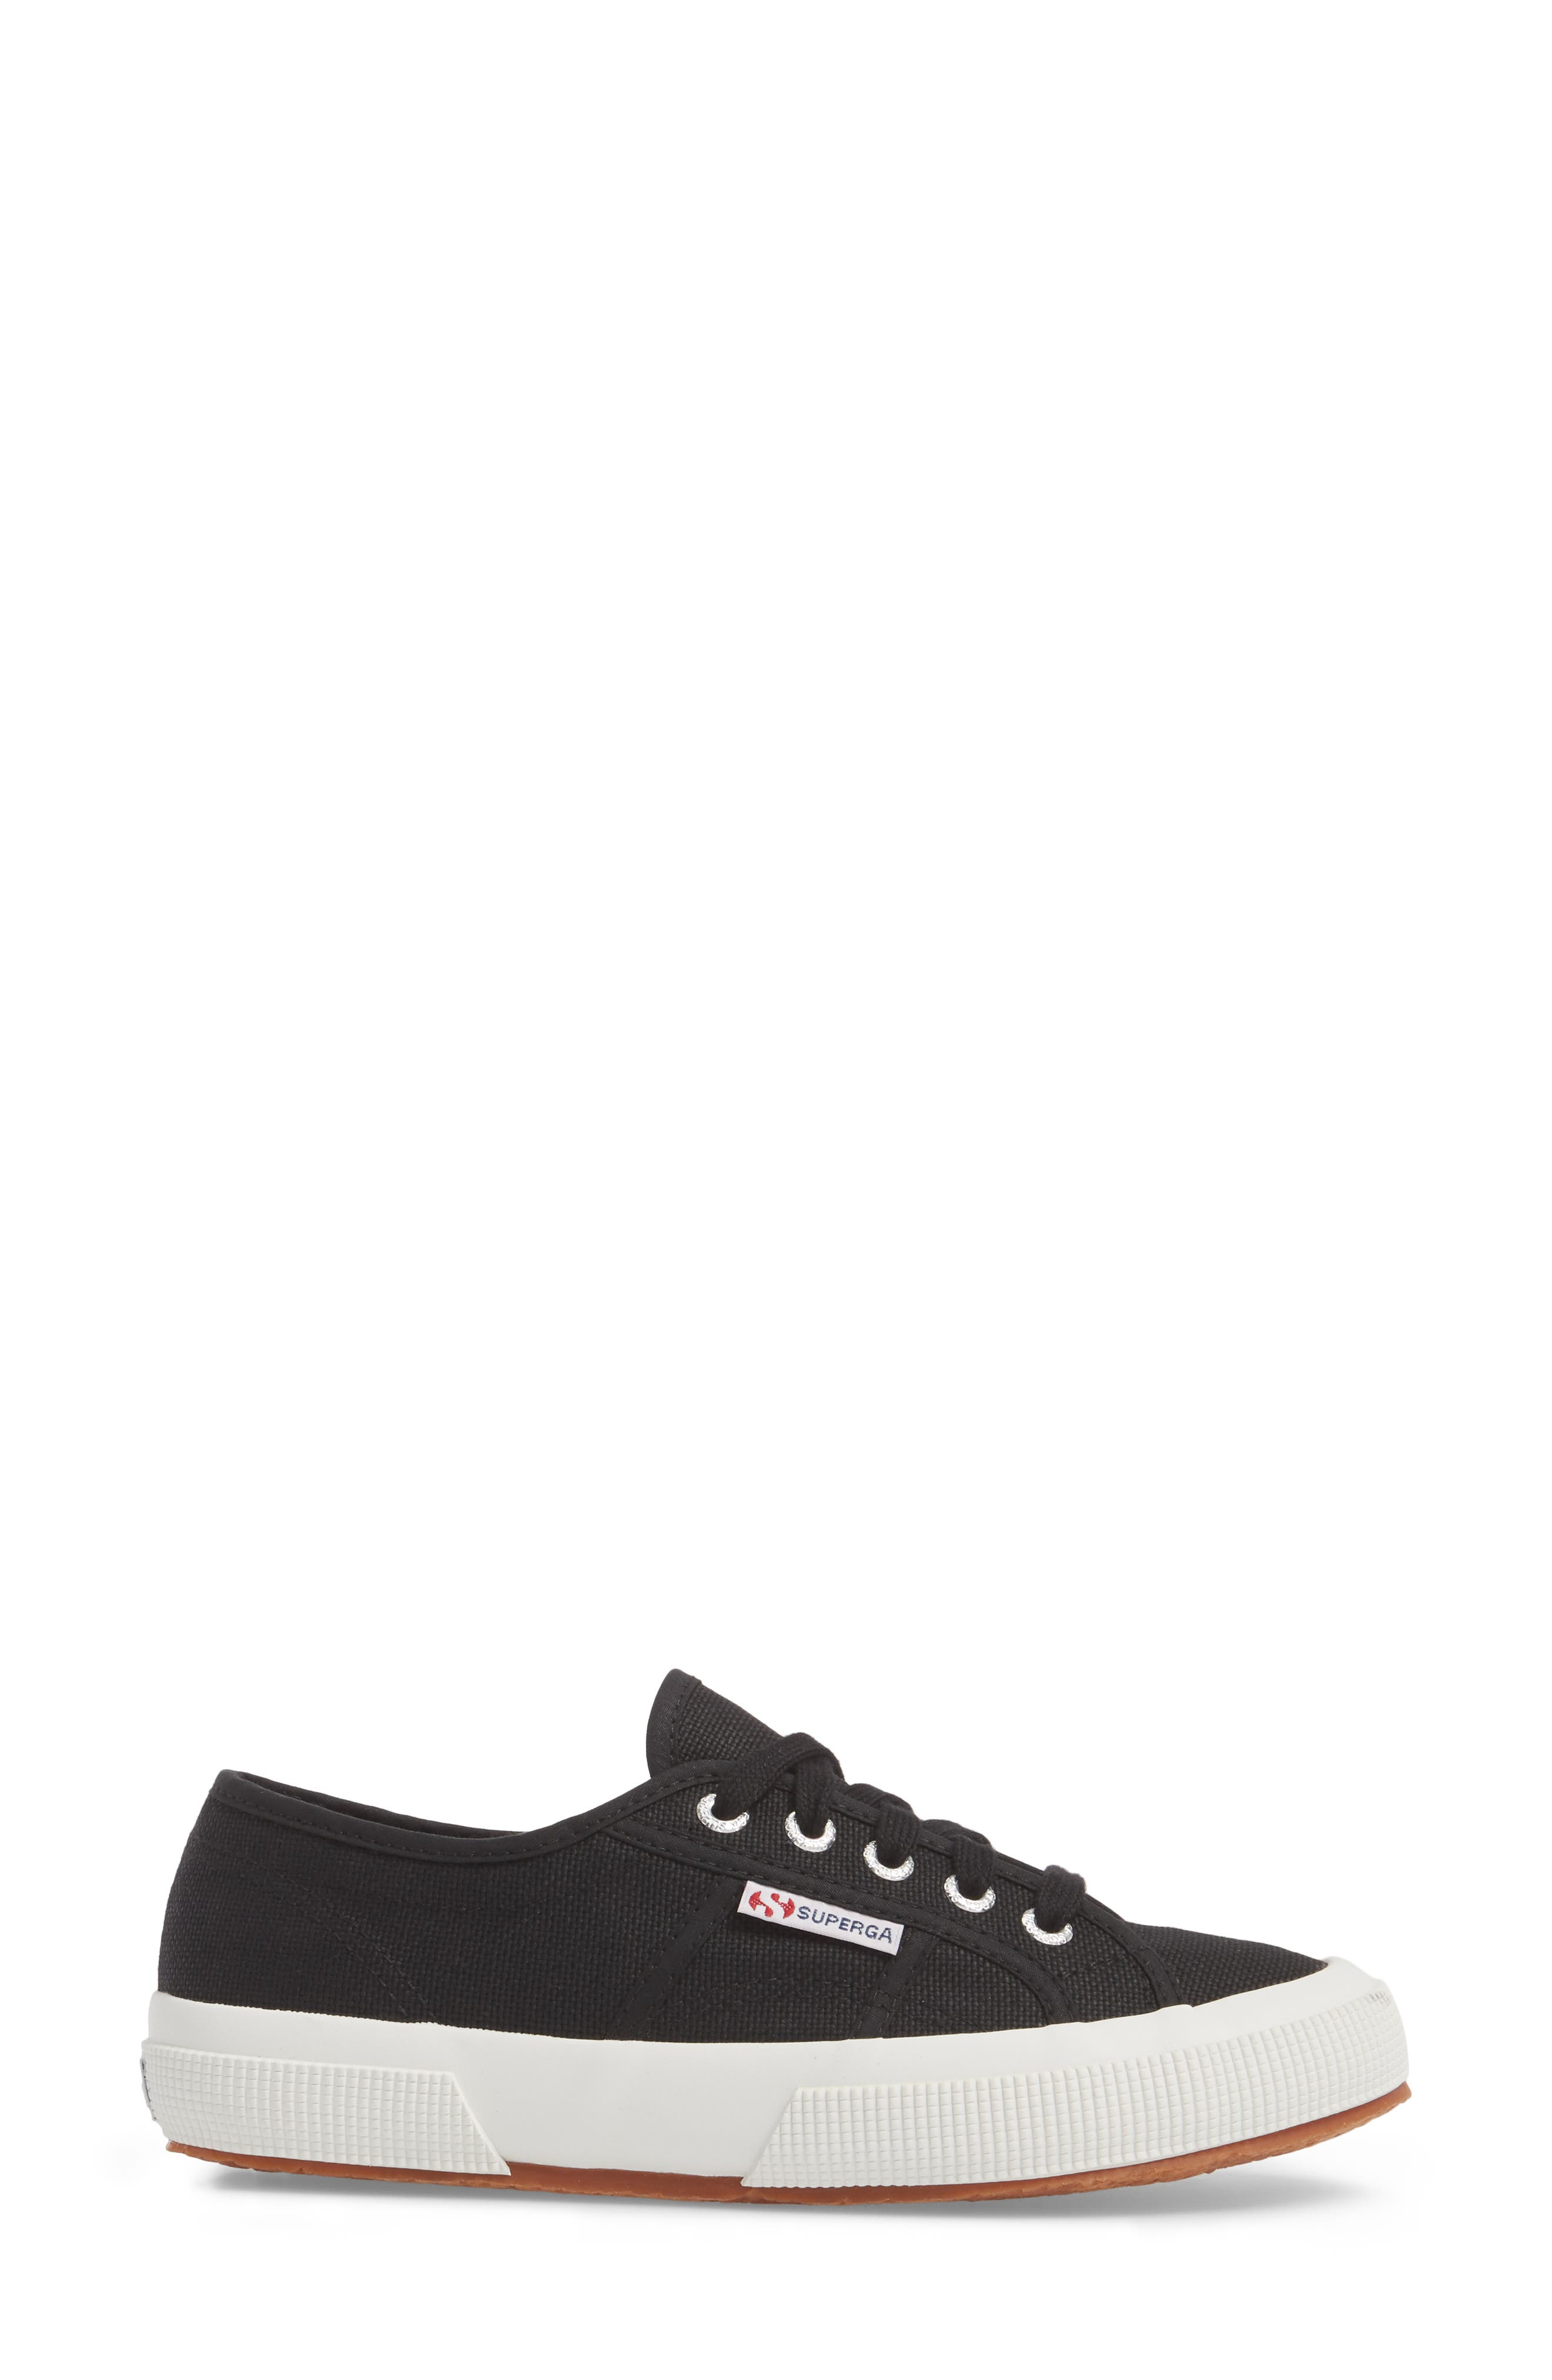 'Cotu' Sneaker,                             Alternate thumbnail 3, color,                             BLACK/ BLACK/ WHITE